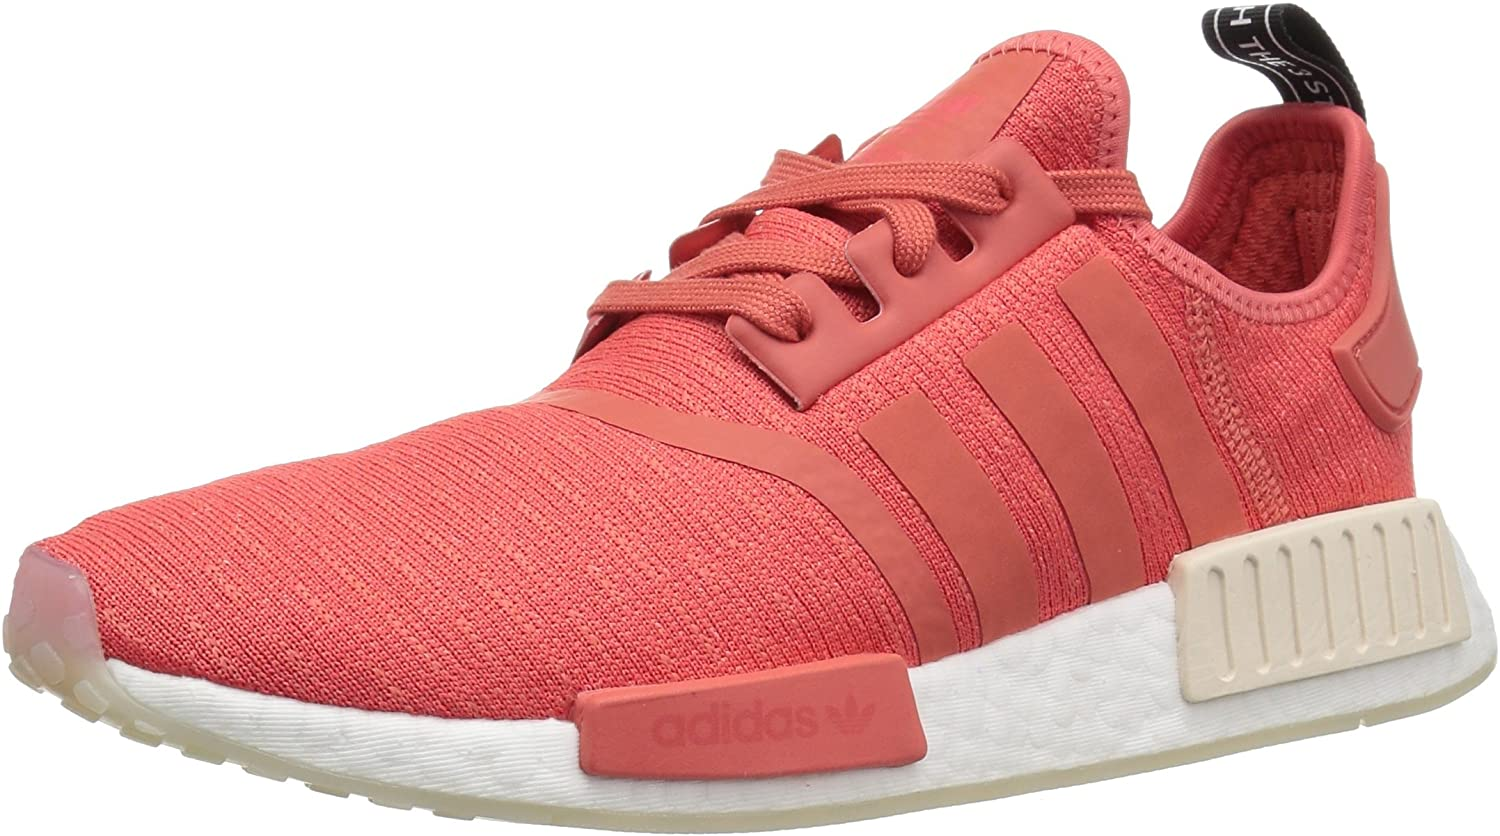 Adidas ORIGINALS Women's NMD_R1 Running shoes, Trace Scarlet White, 11 M US